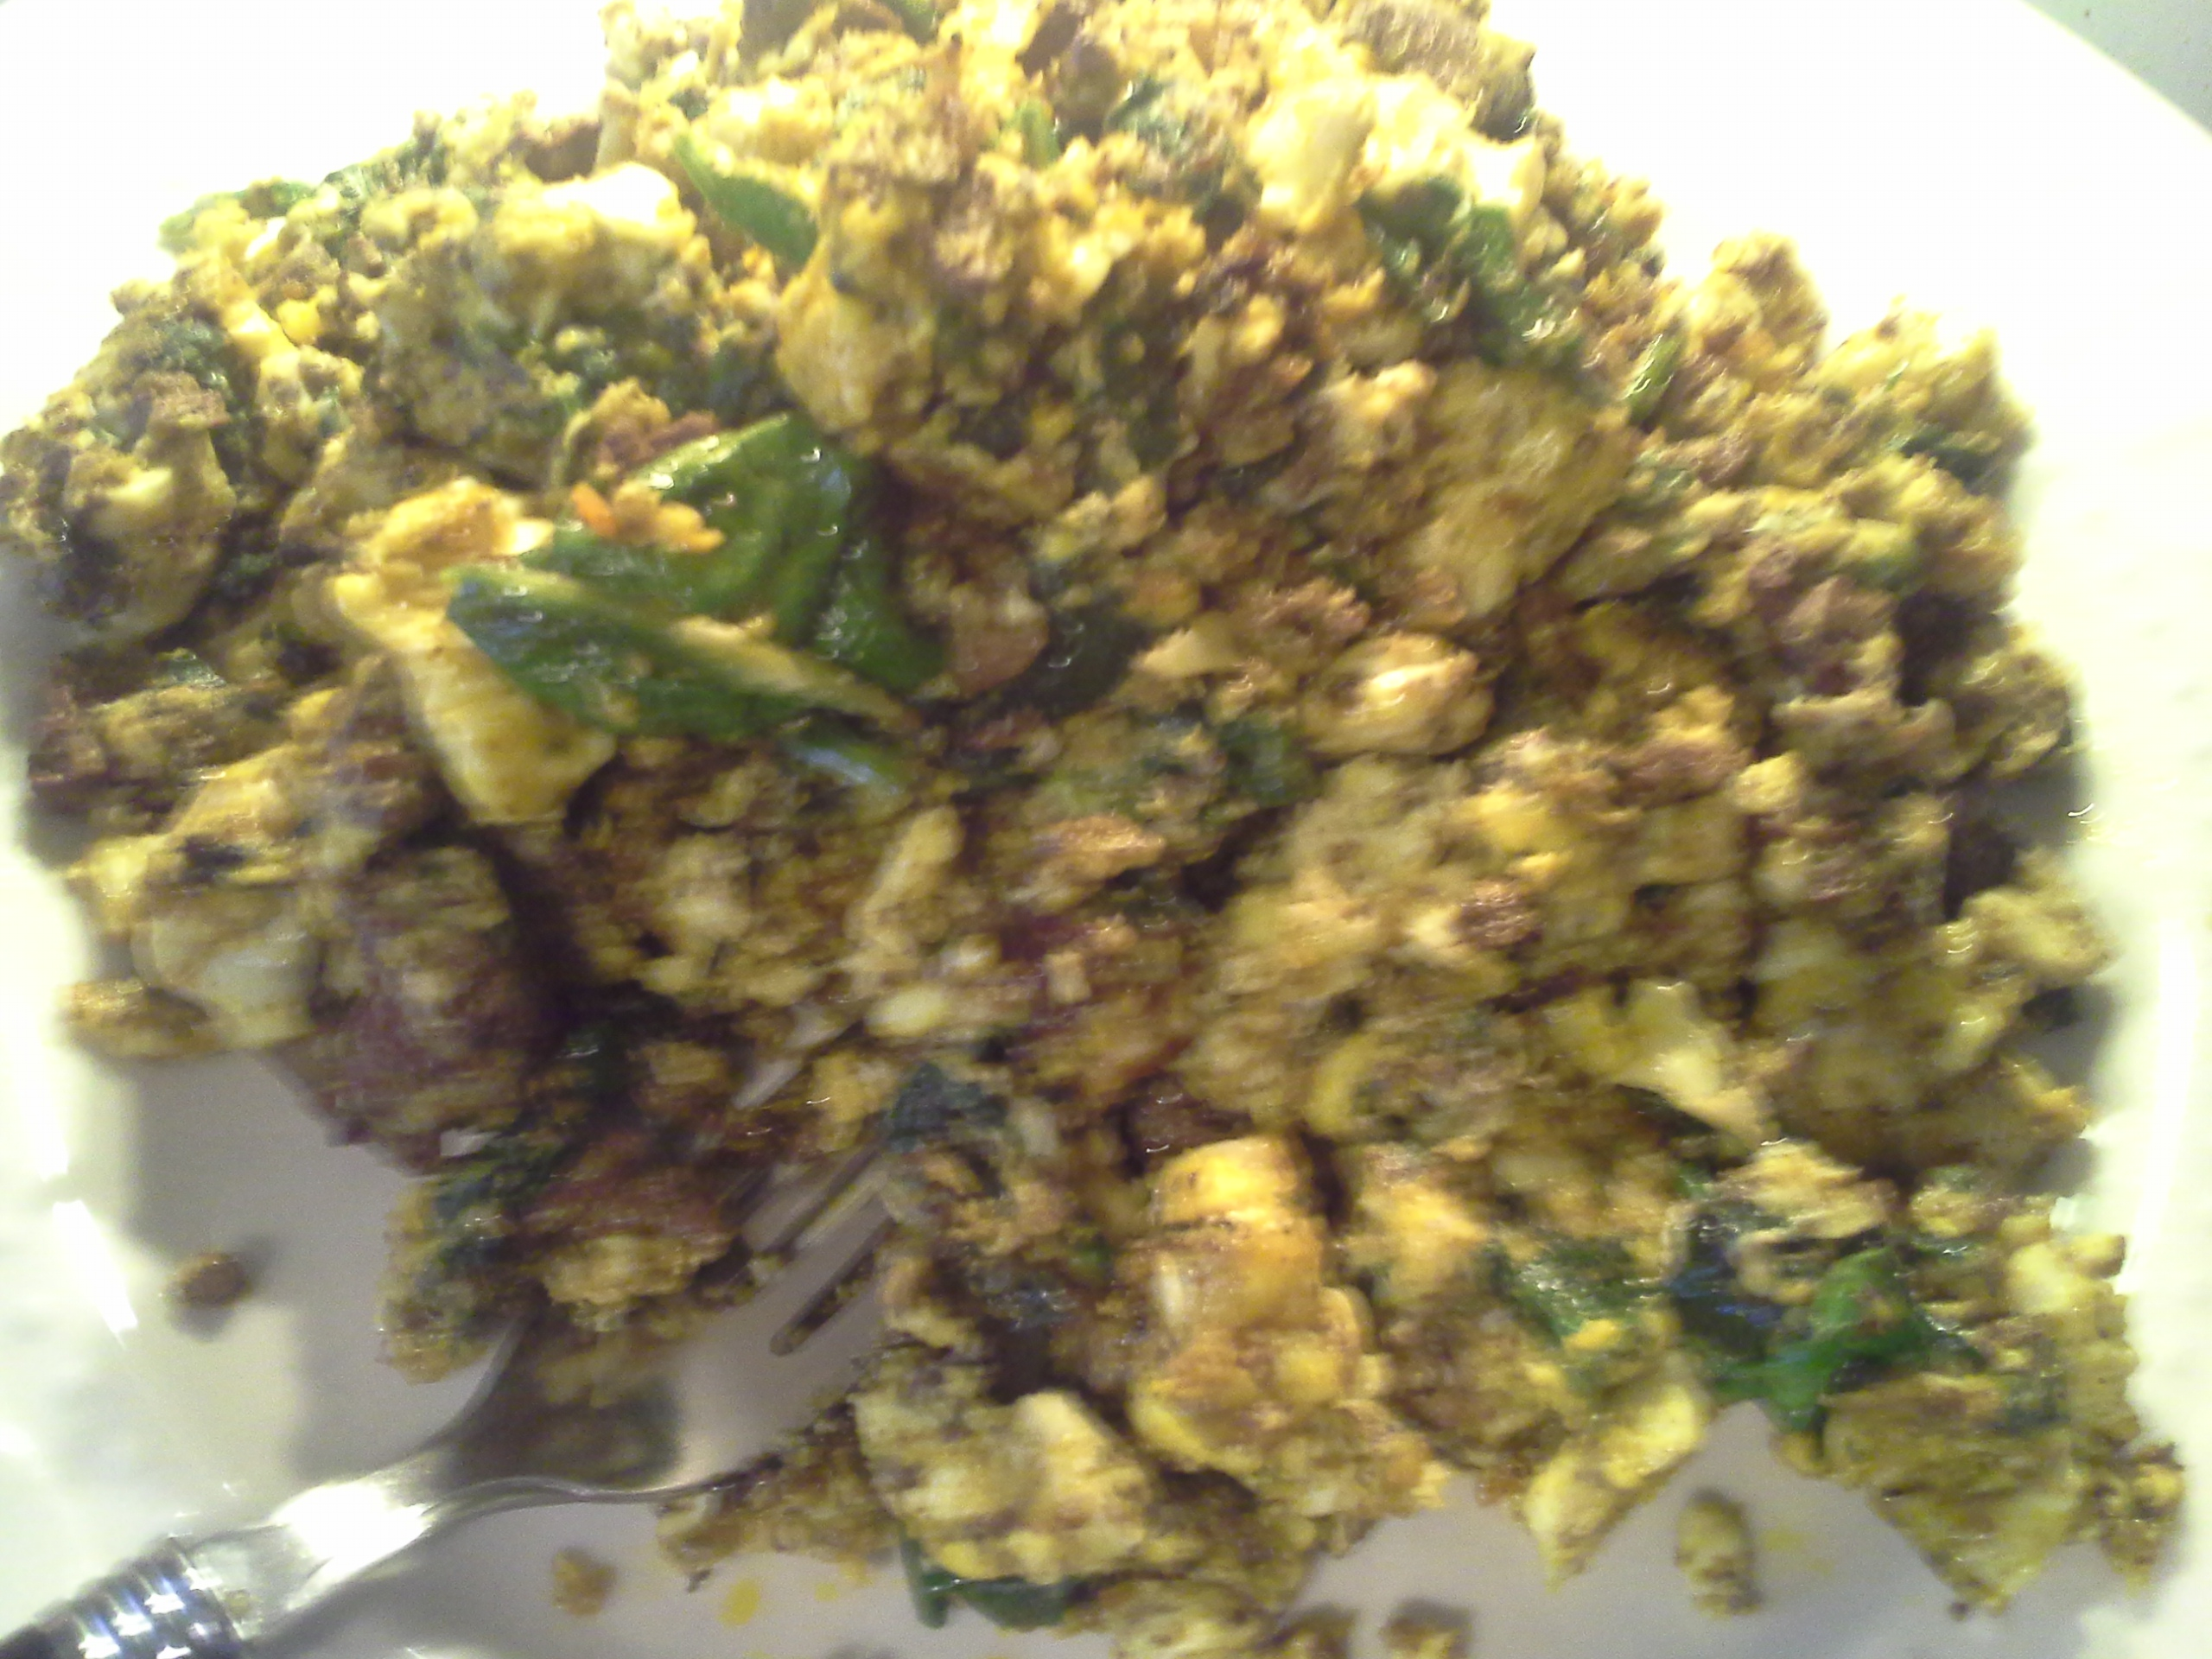 Lunch: 4:55 p.m. | 2 chicken livers, 4 eggs, greens mix, 2 Tbsp. red palm oil, herbs & spices